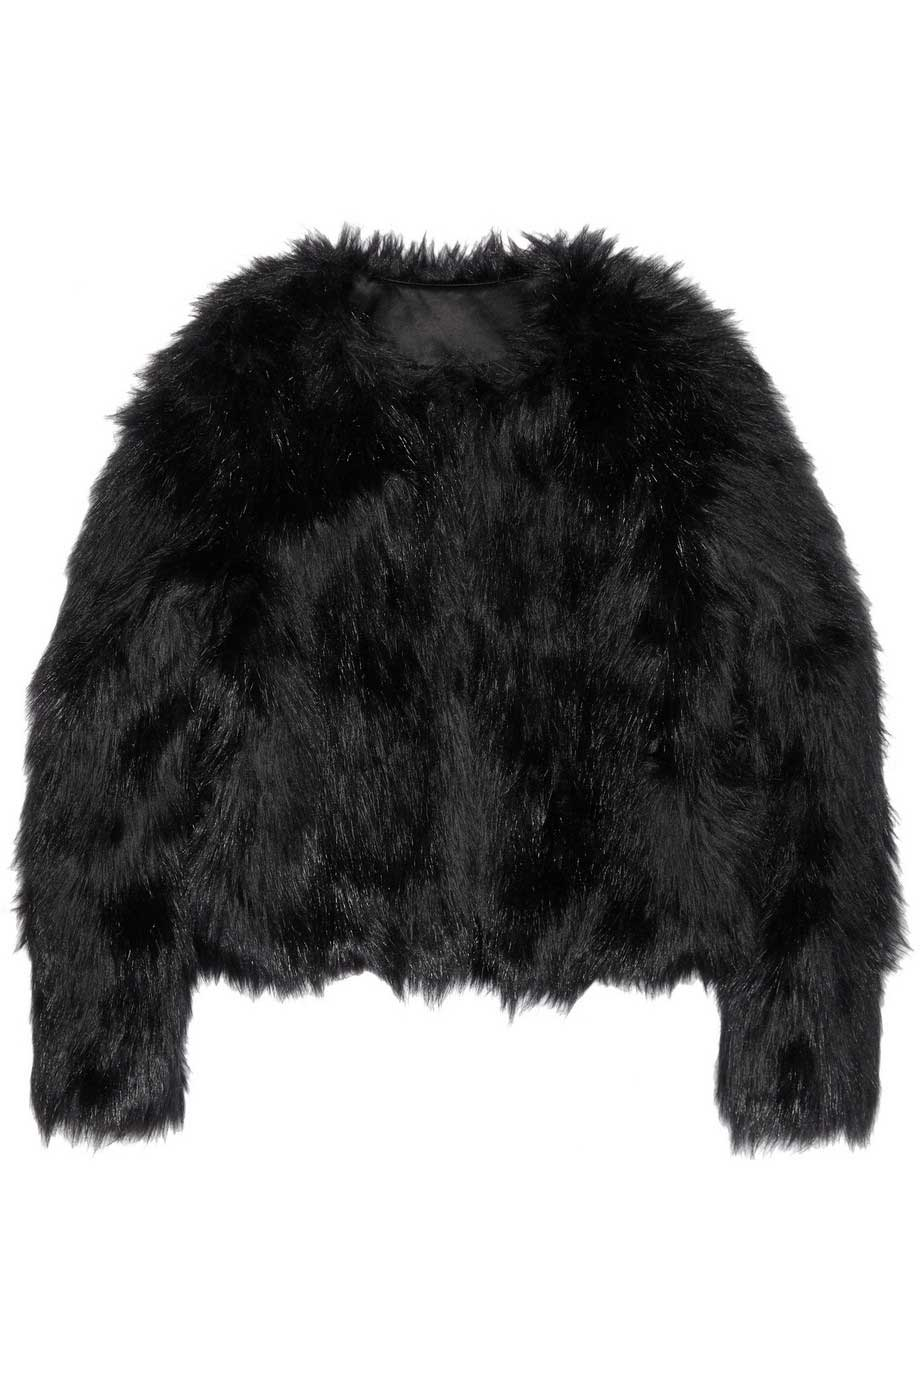 Altuzarra For Target Limited Edition Black Faux Fur Jacket / Sz S